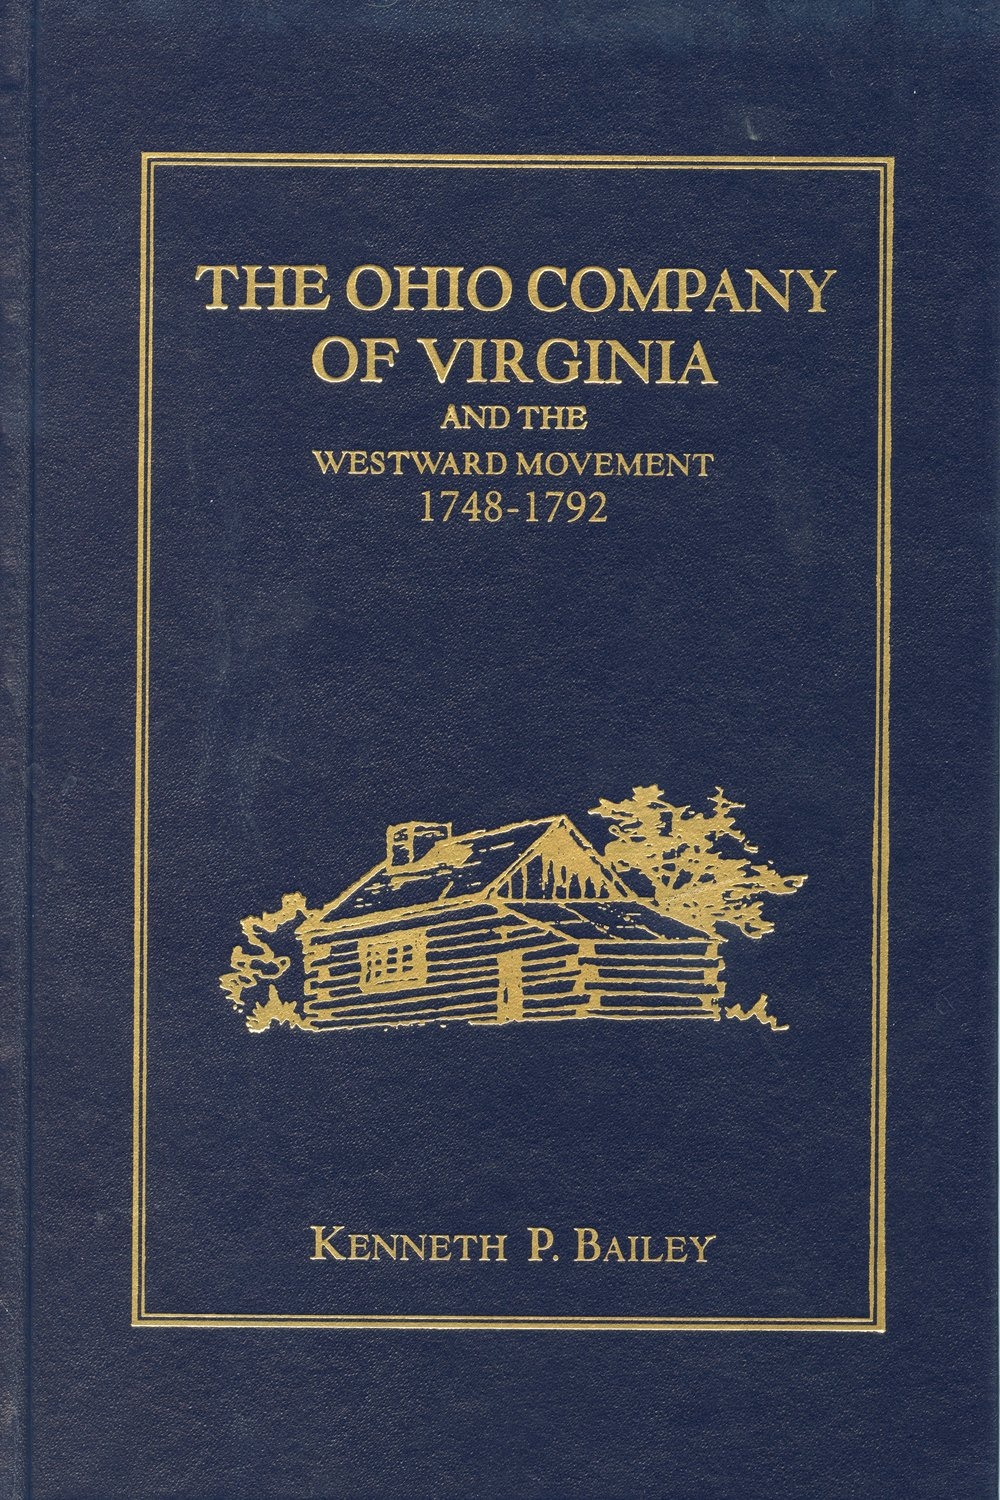 The Ohio Company of Virginia and the Westward Movement: 1748-1792